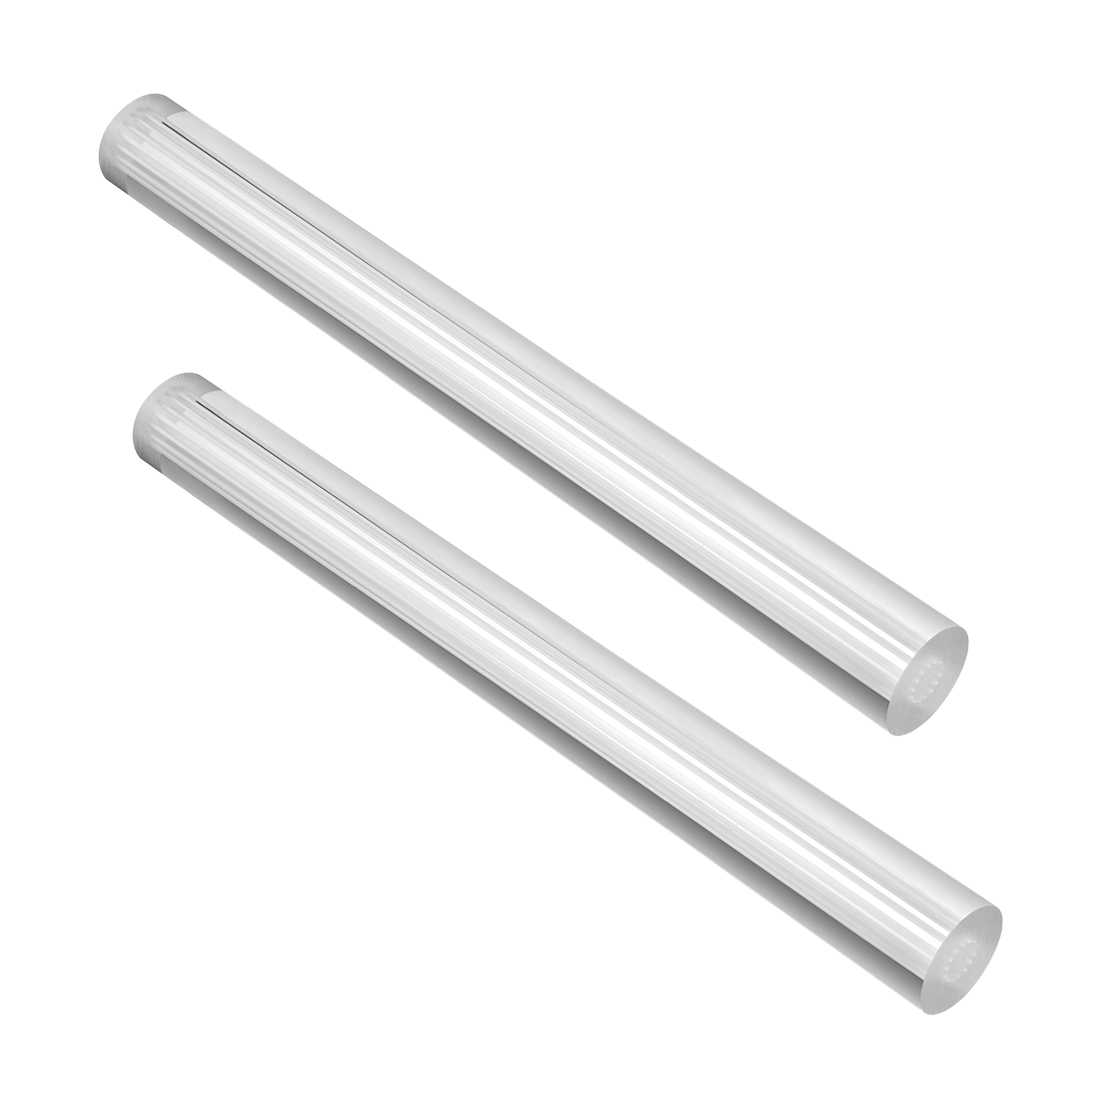 25mmx250mm Straight White Line Solid Acrylic Round Rods PMMA Bars 2pcs